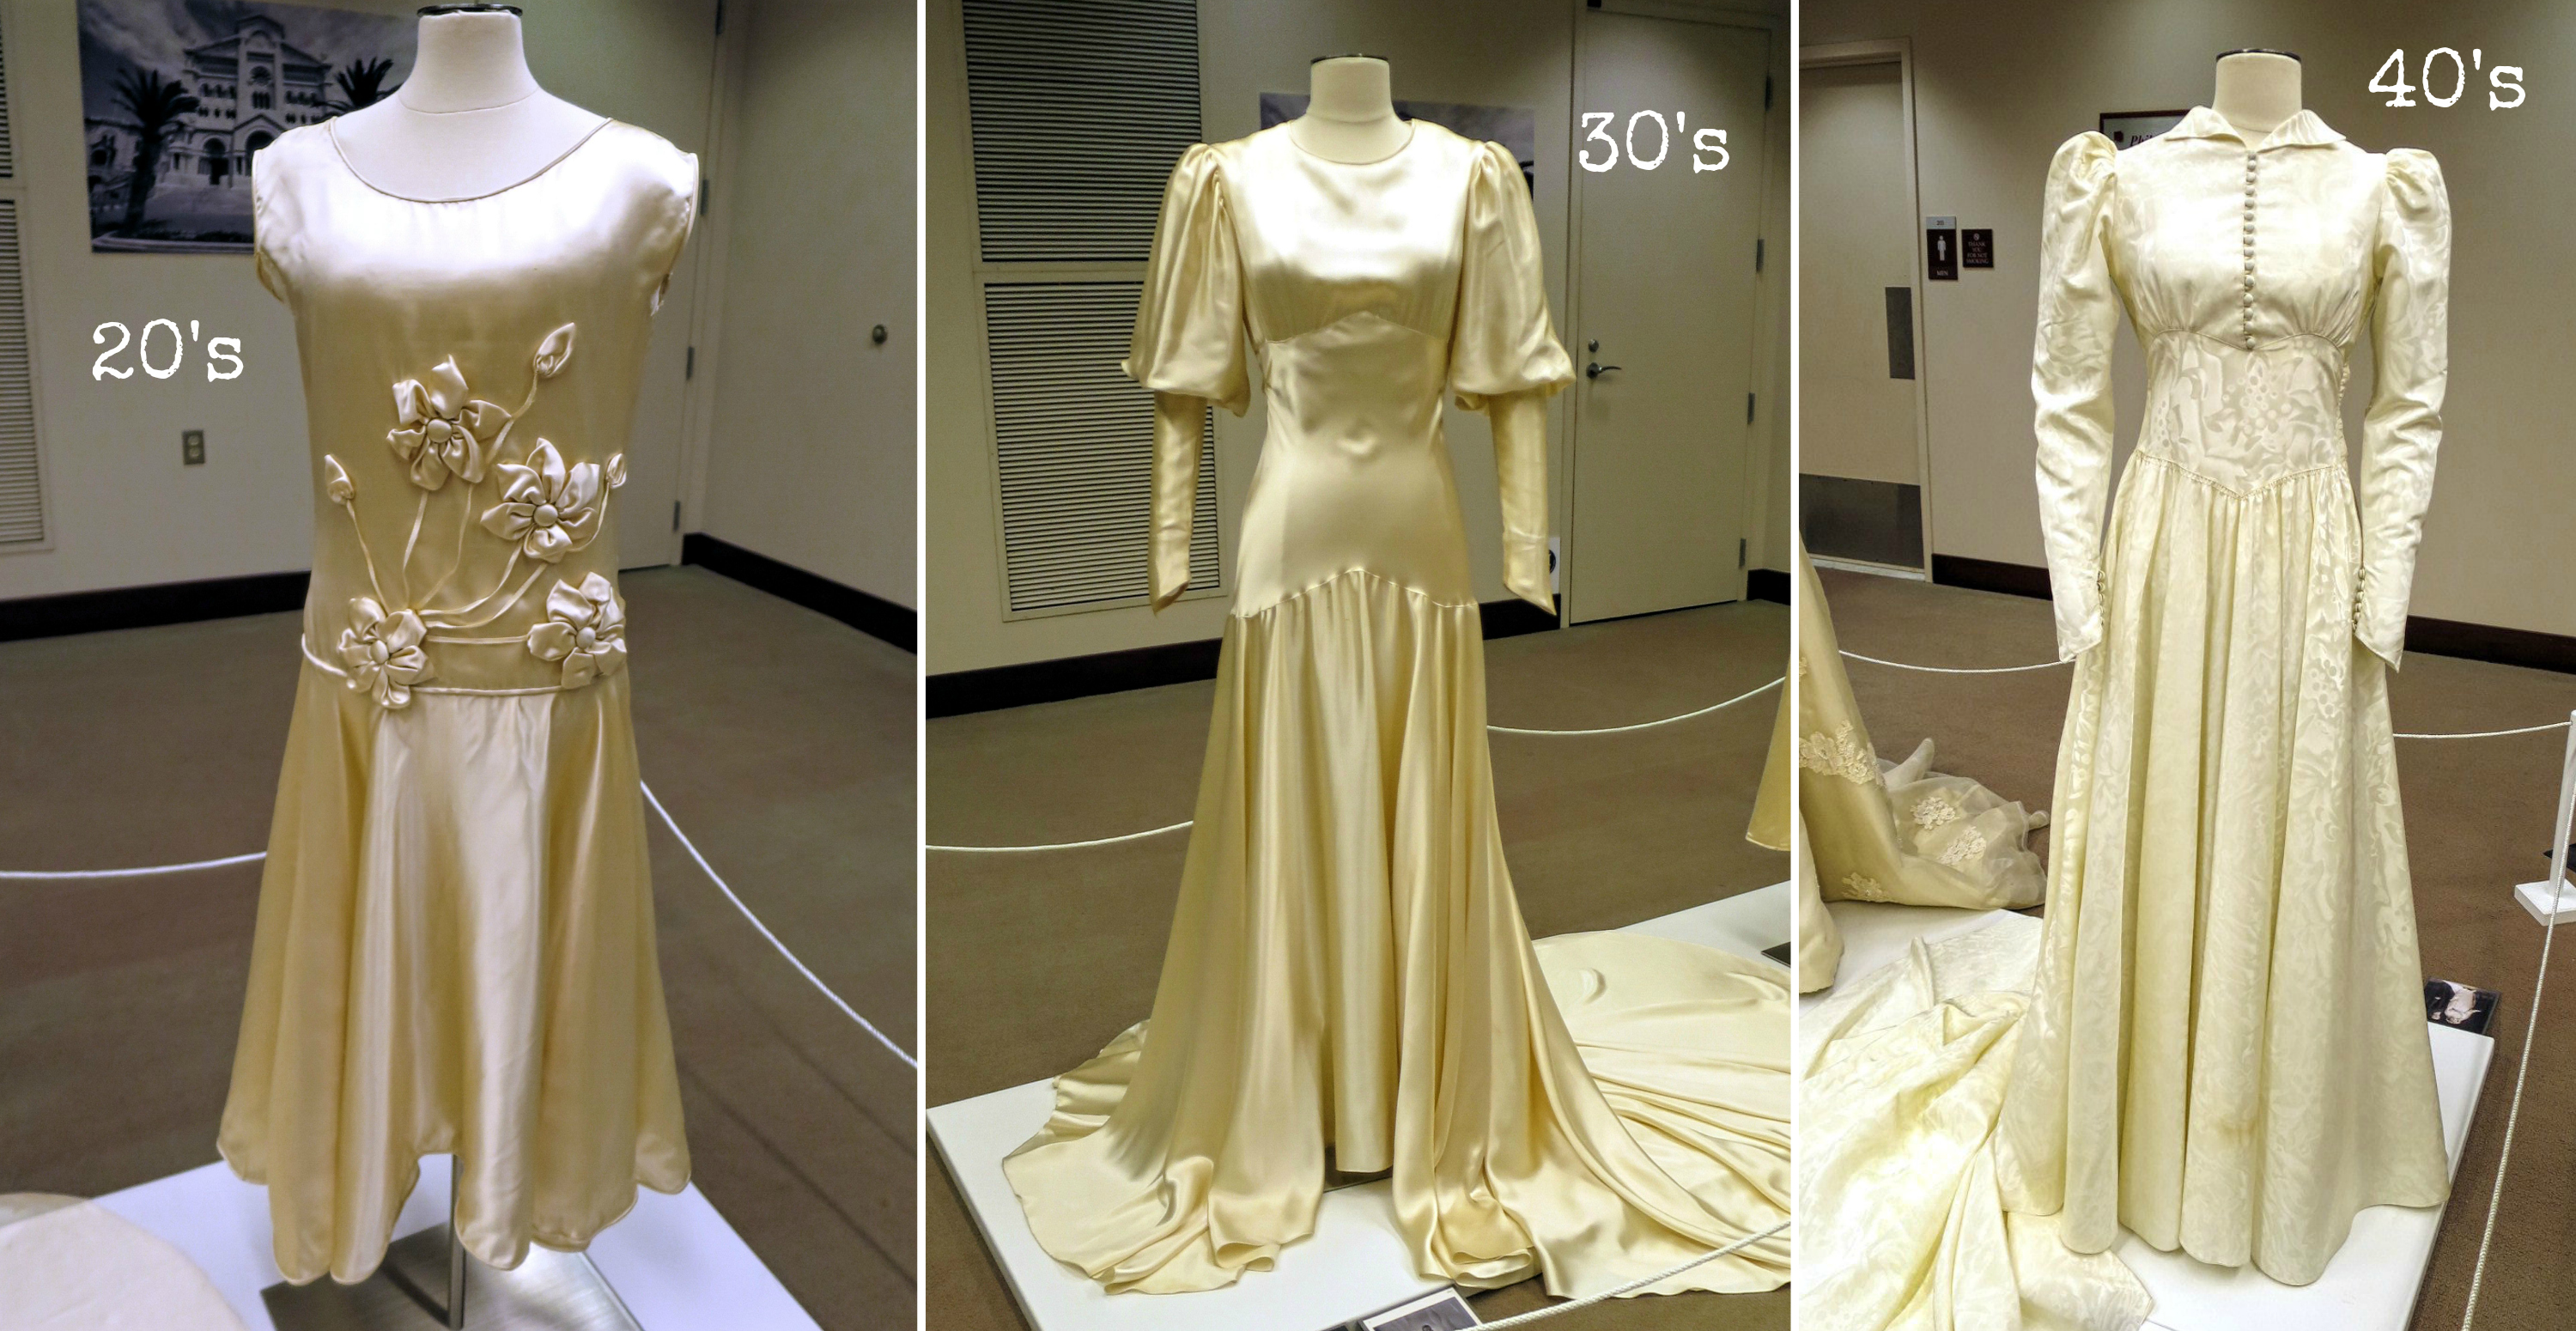 EastFallsLocal 20s 30s 40s collage wedding dress